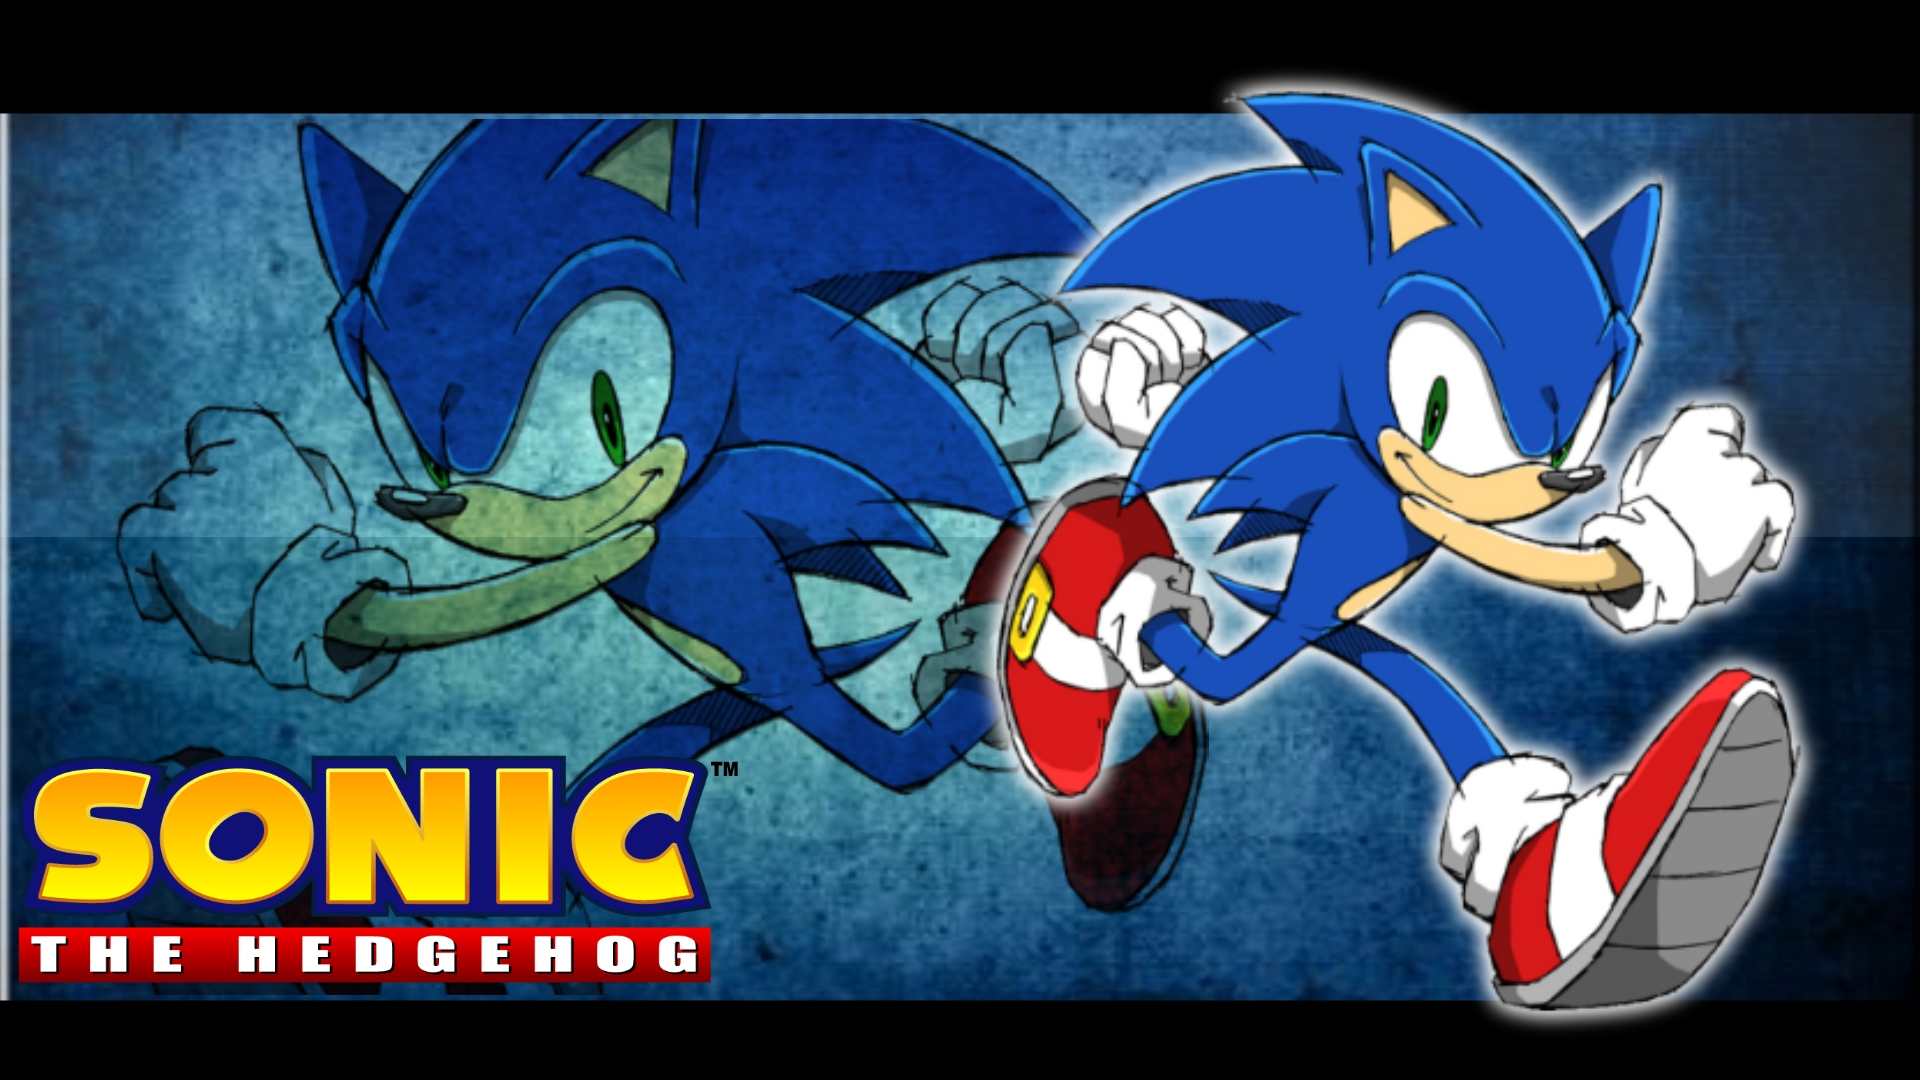 Sonic The Hedgehog Hd Wallpaper Background Image 1920x1080 Id 509992 Wallpaper Abyss